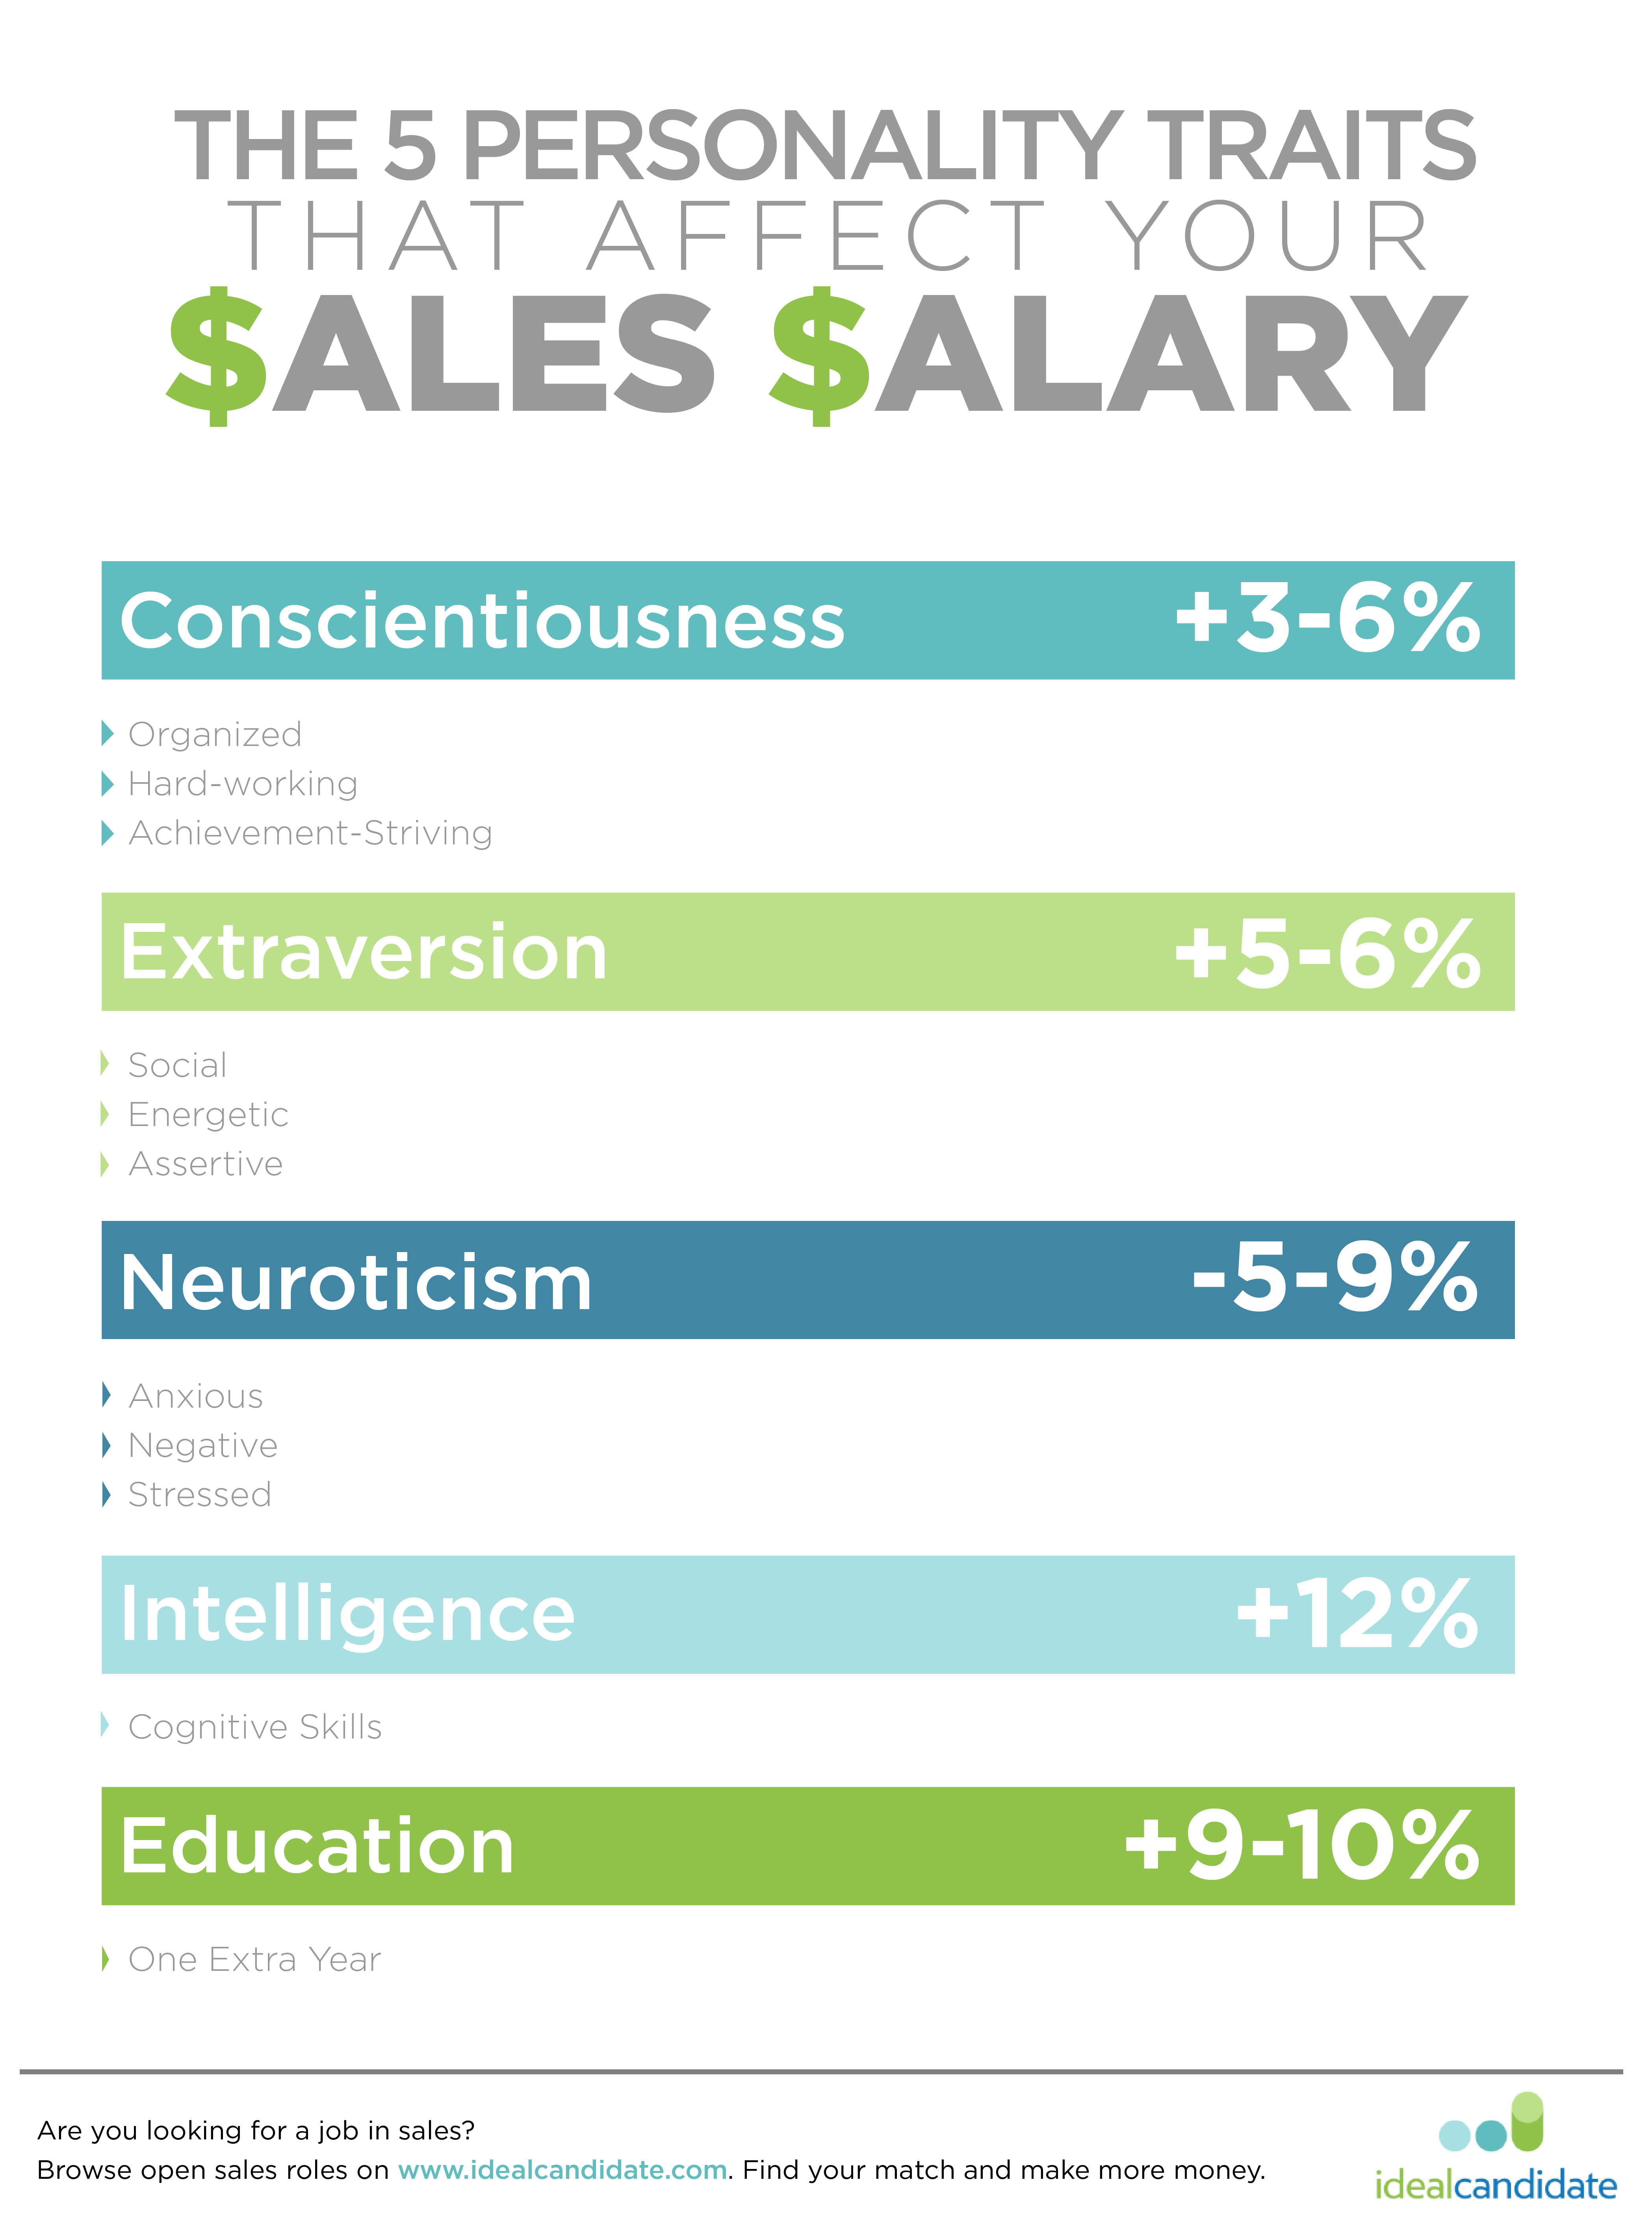 5 Personality Traits That Have a Big Impact on Your Sales Paycheck